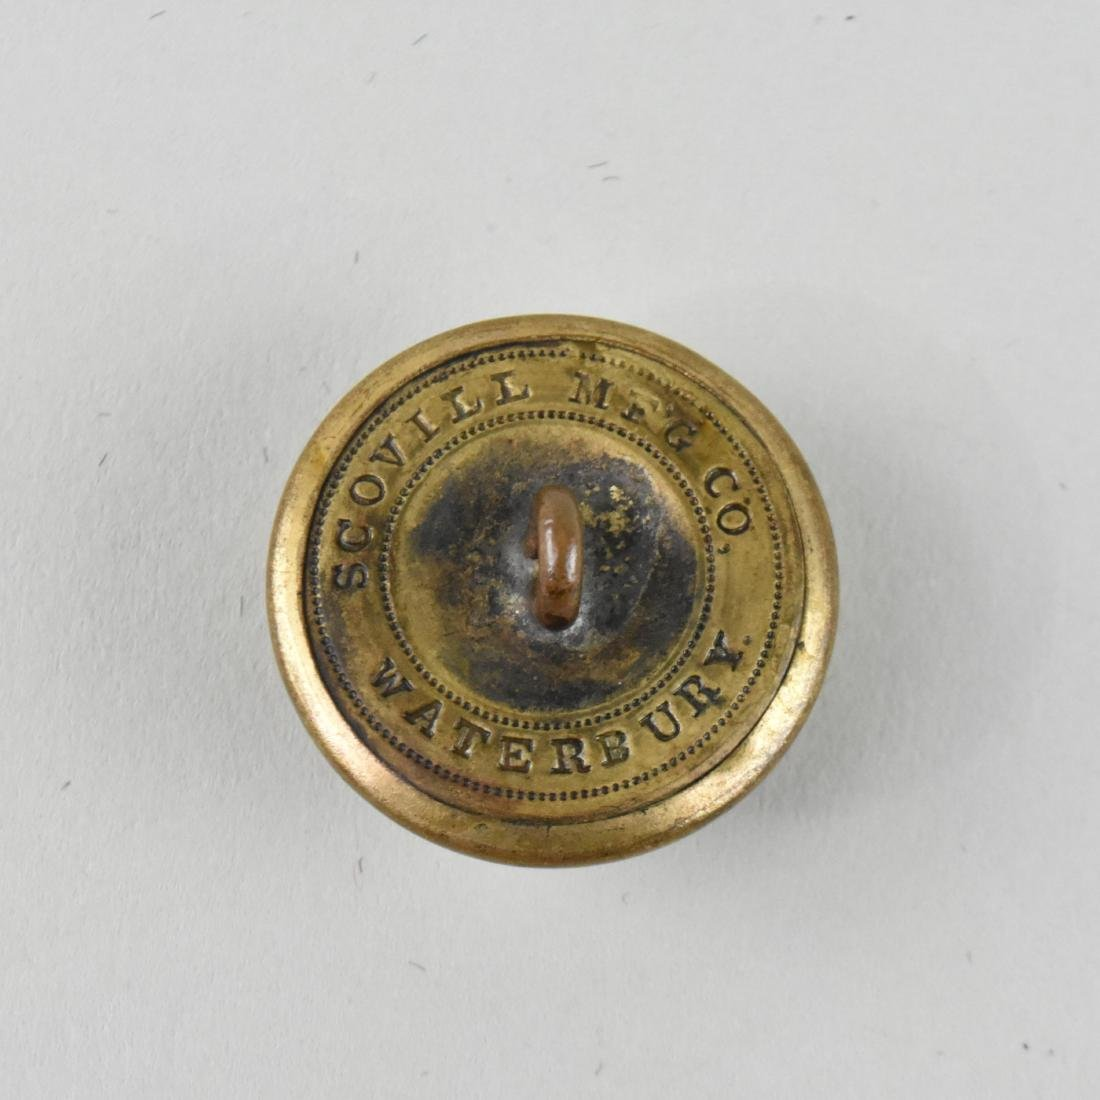 CALIFORNIA CIVIL WAR ERA EUREKA COAT BUTTON - 3